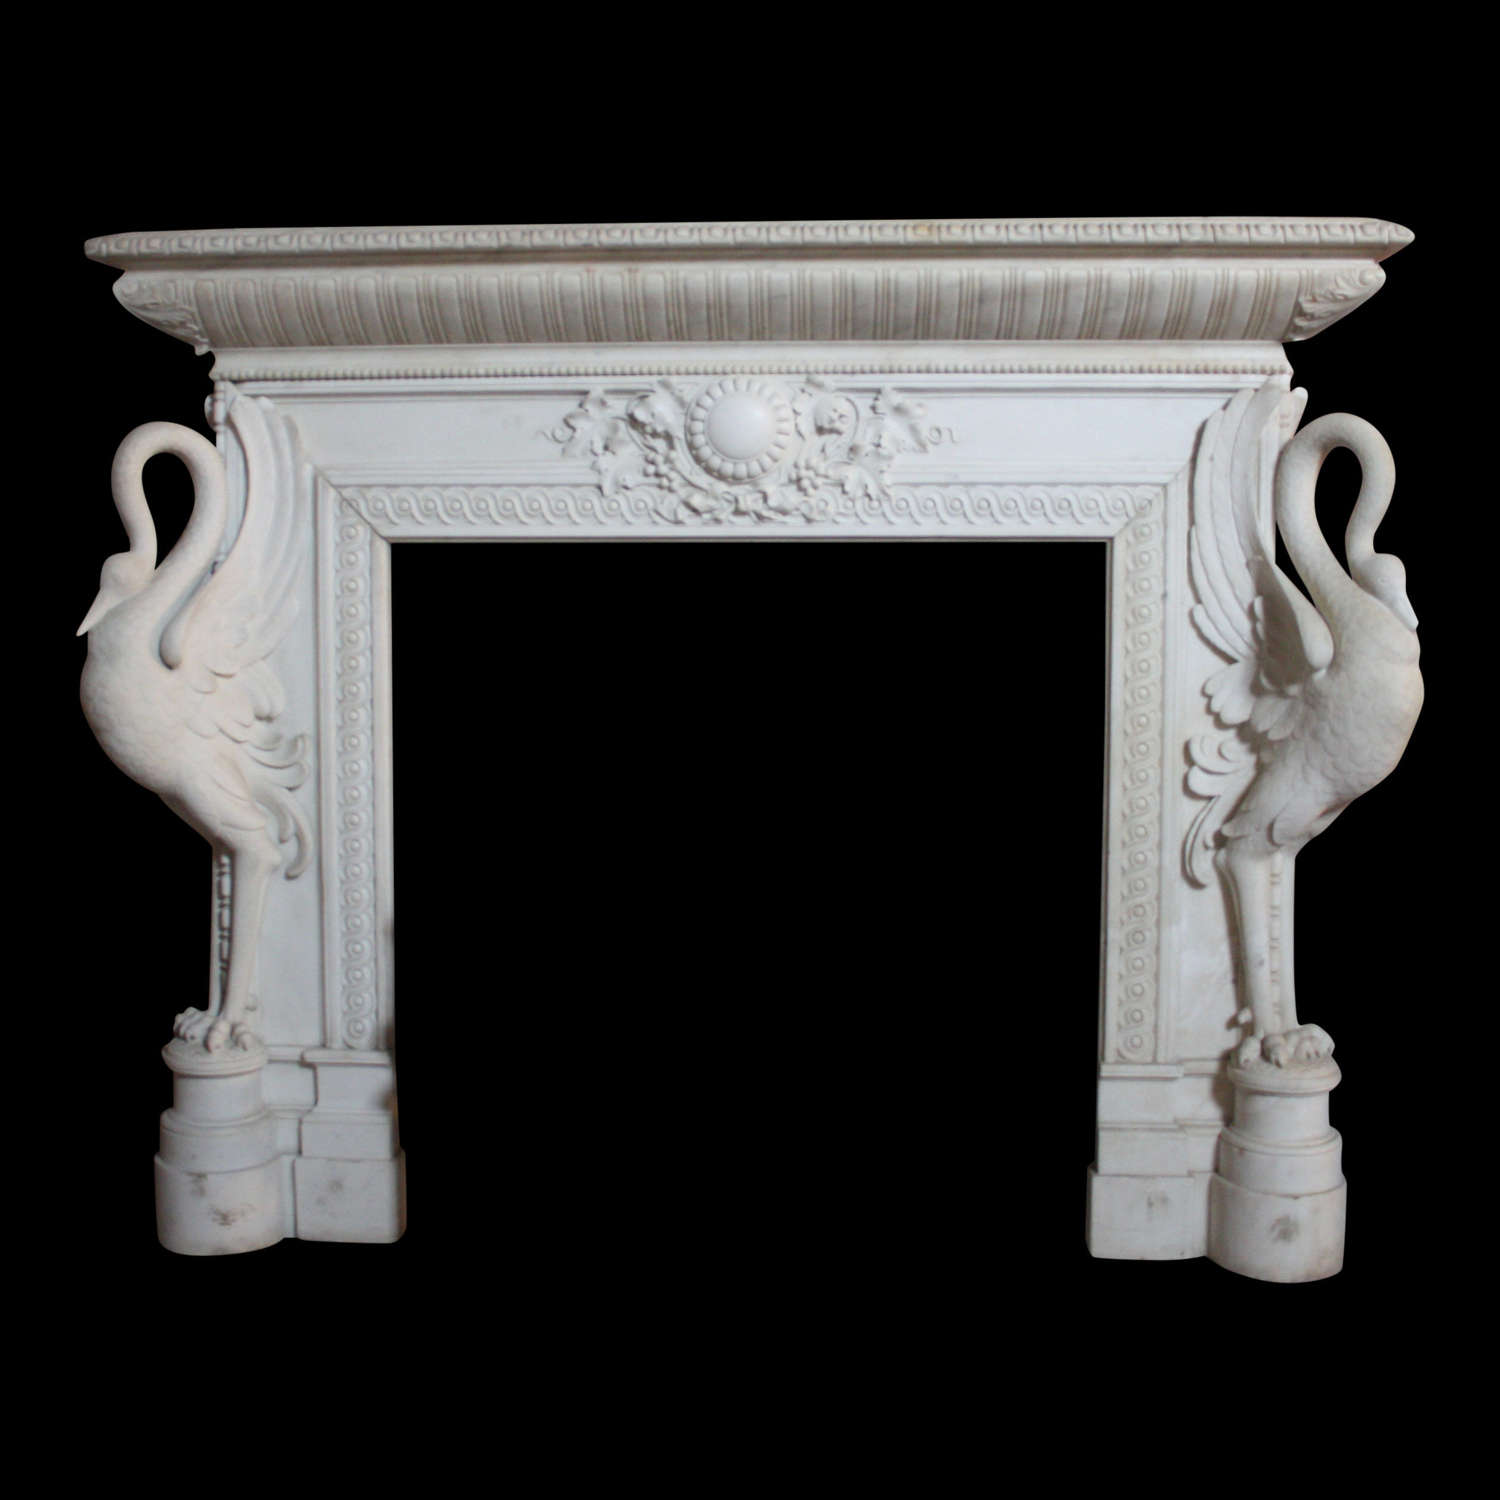 A Rare and Exceptional19th Century Italian Chimneypiece in Statuary Ma